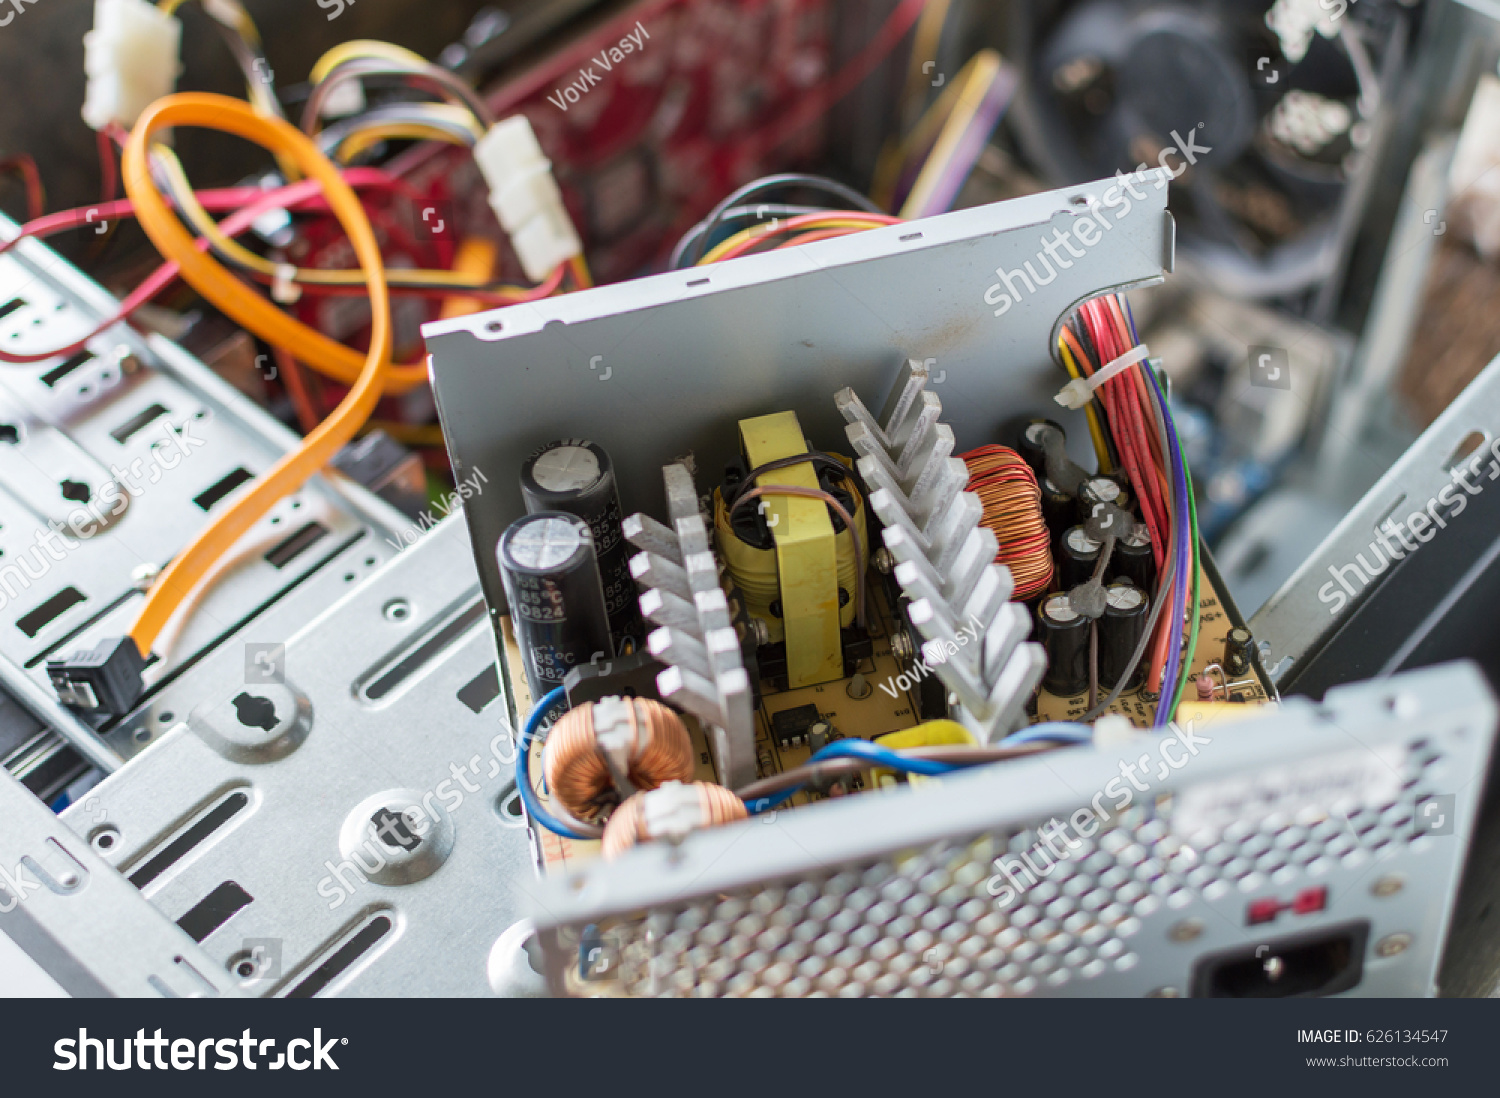 Fancy Pc Power Supply Repair Sketch - Electrical and Wiring Diagram ...